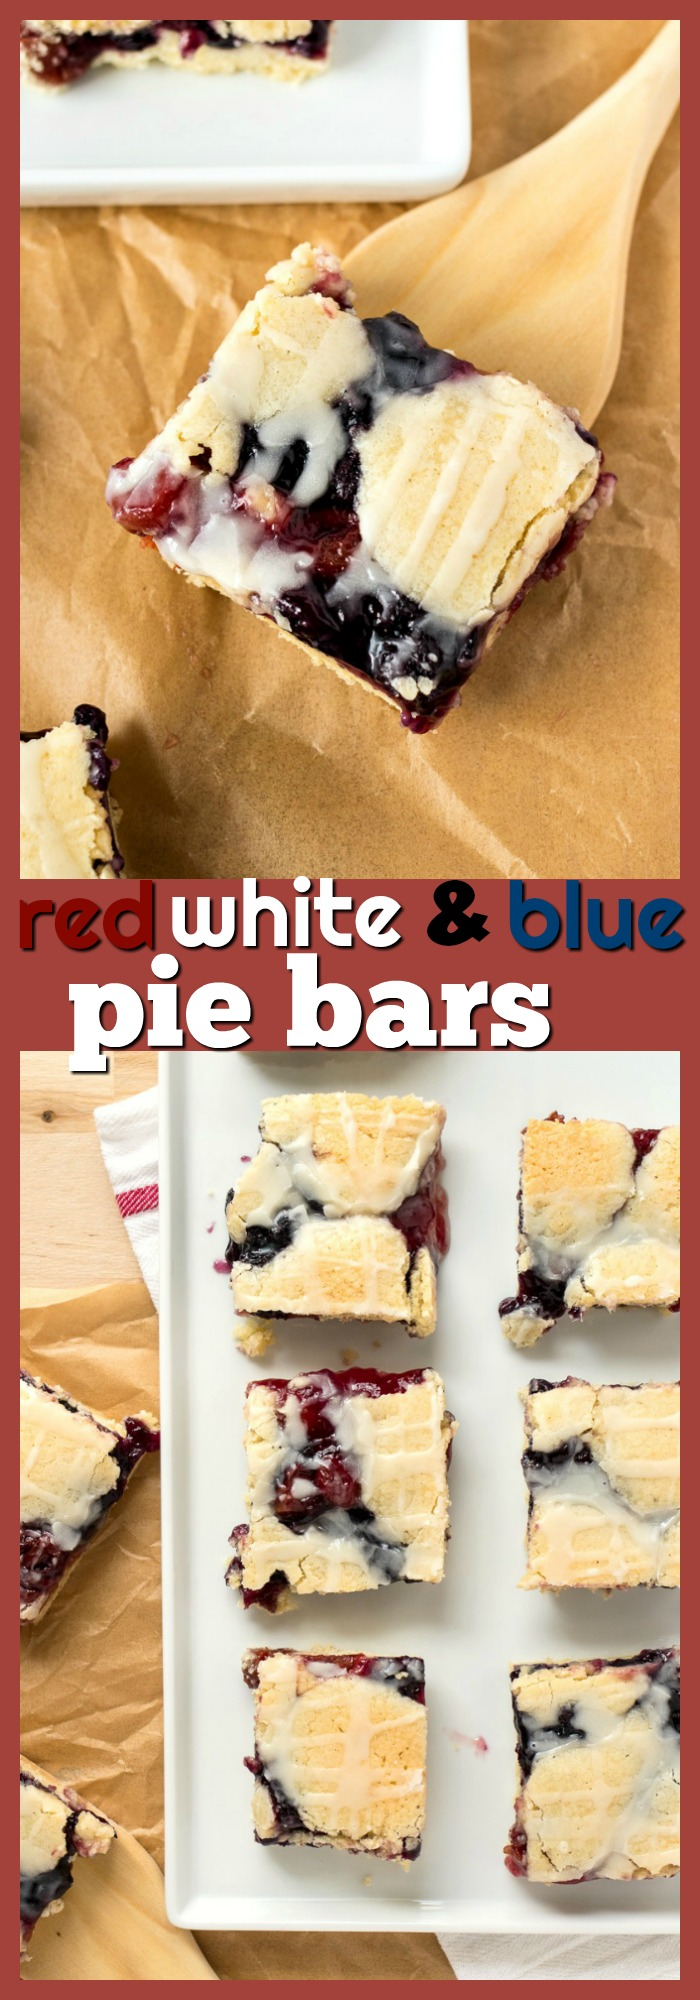 Red, White, and Blue Pie Bars photo collage